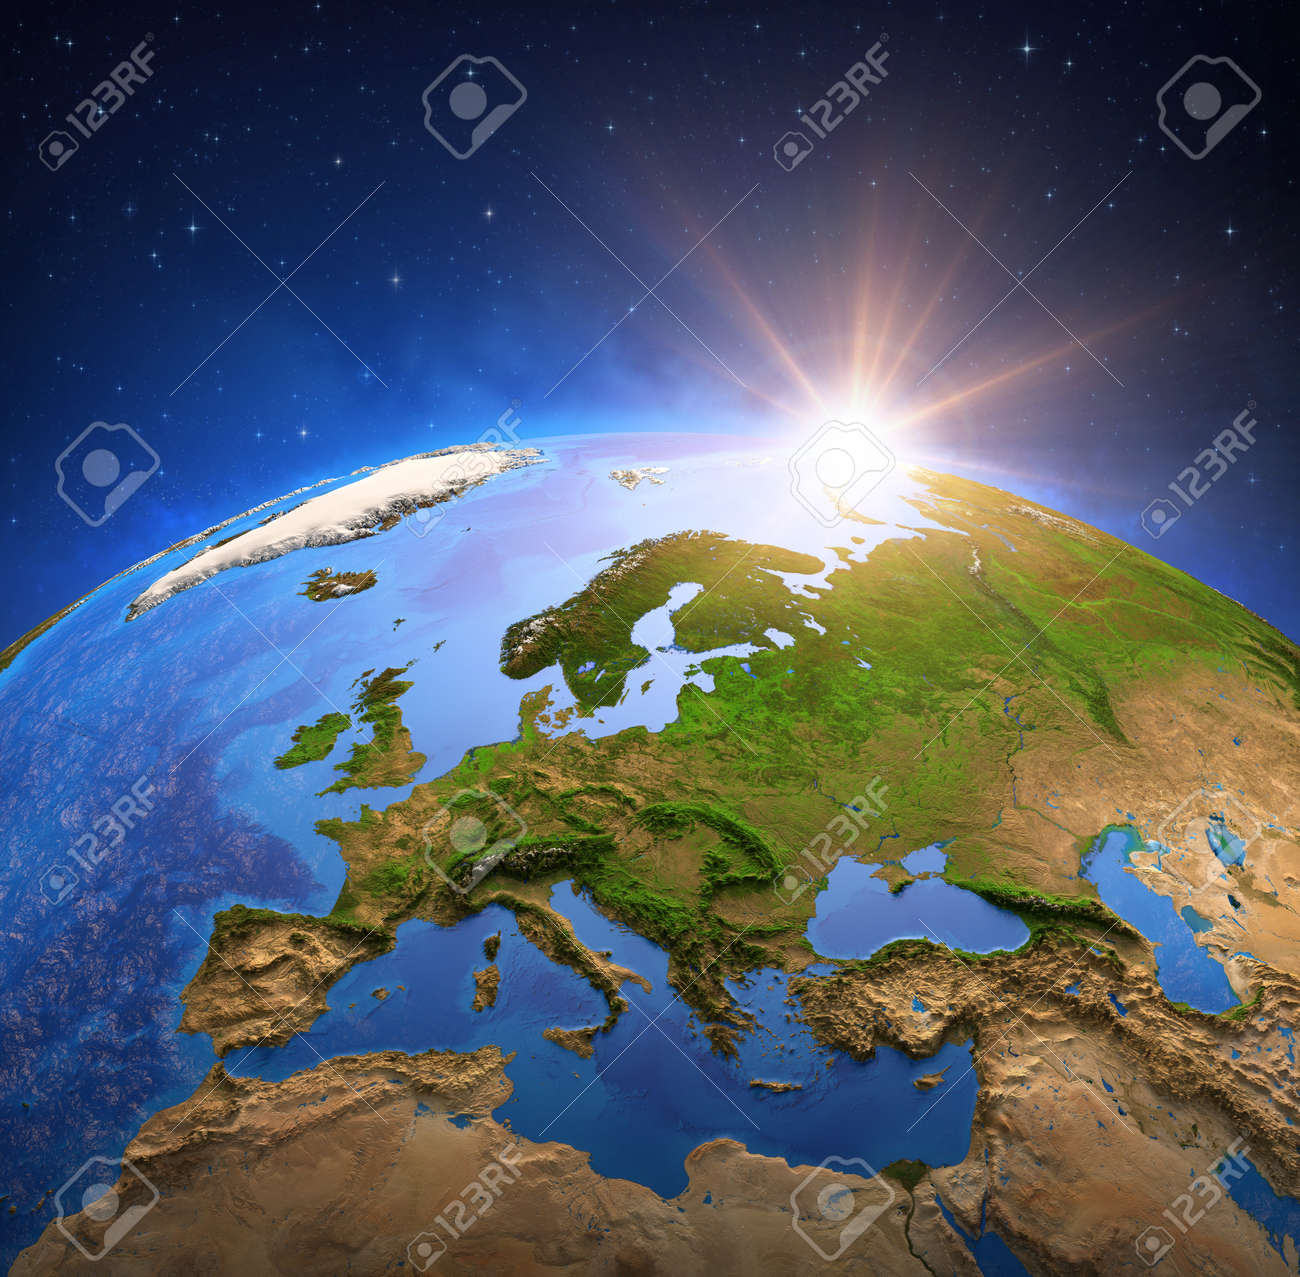 Surface of the Planet Earth viewed from a satellite, focused on Europe, sun rising on the horizon. Physical map of European countries. 3D illustration - 157943809